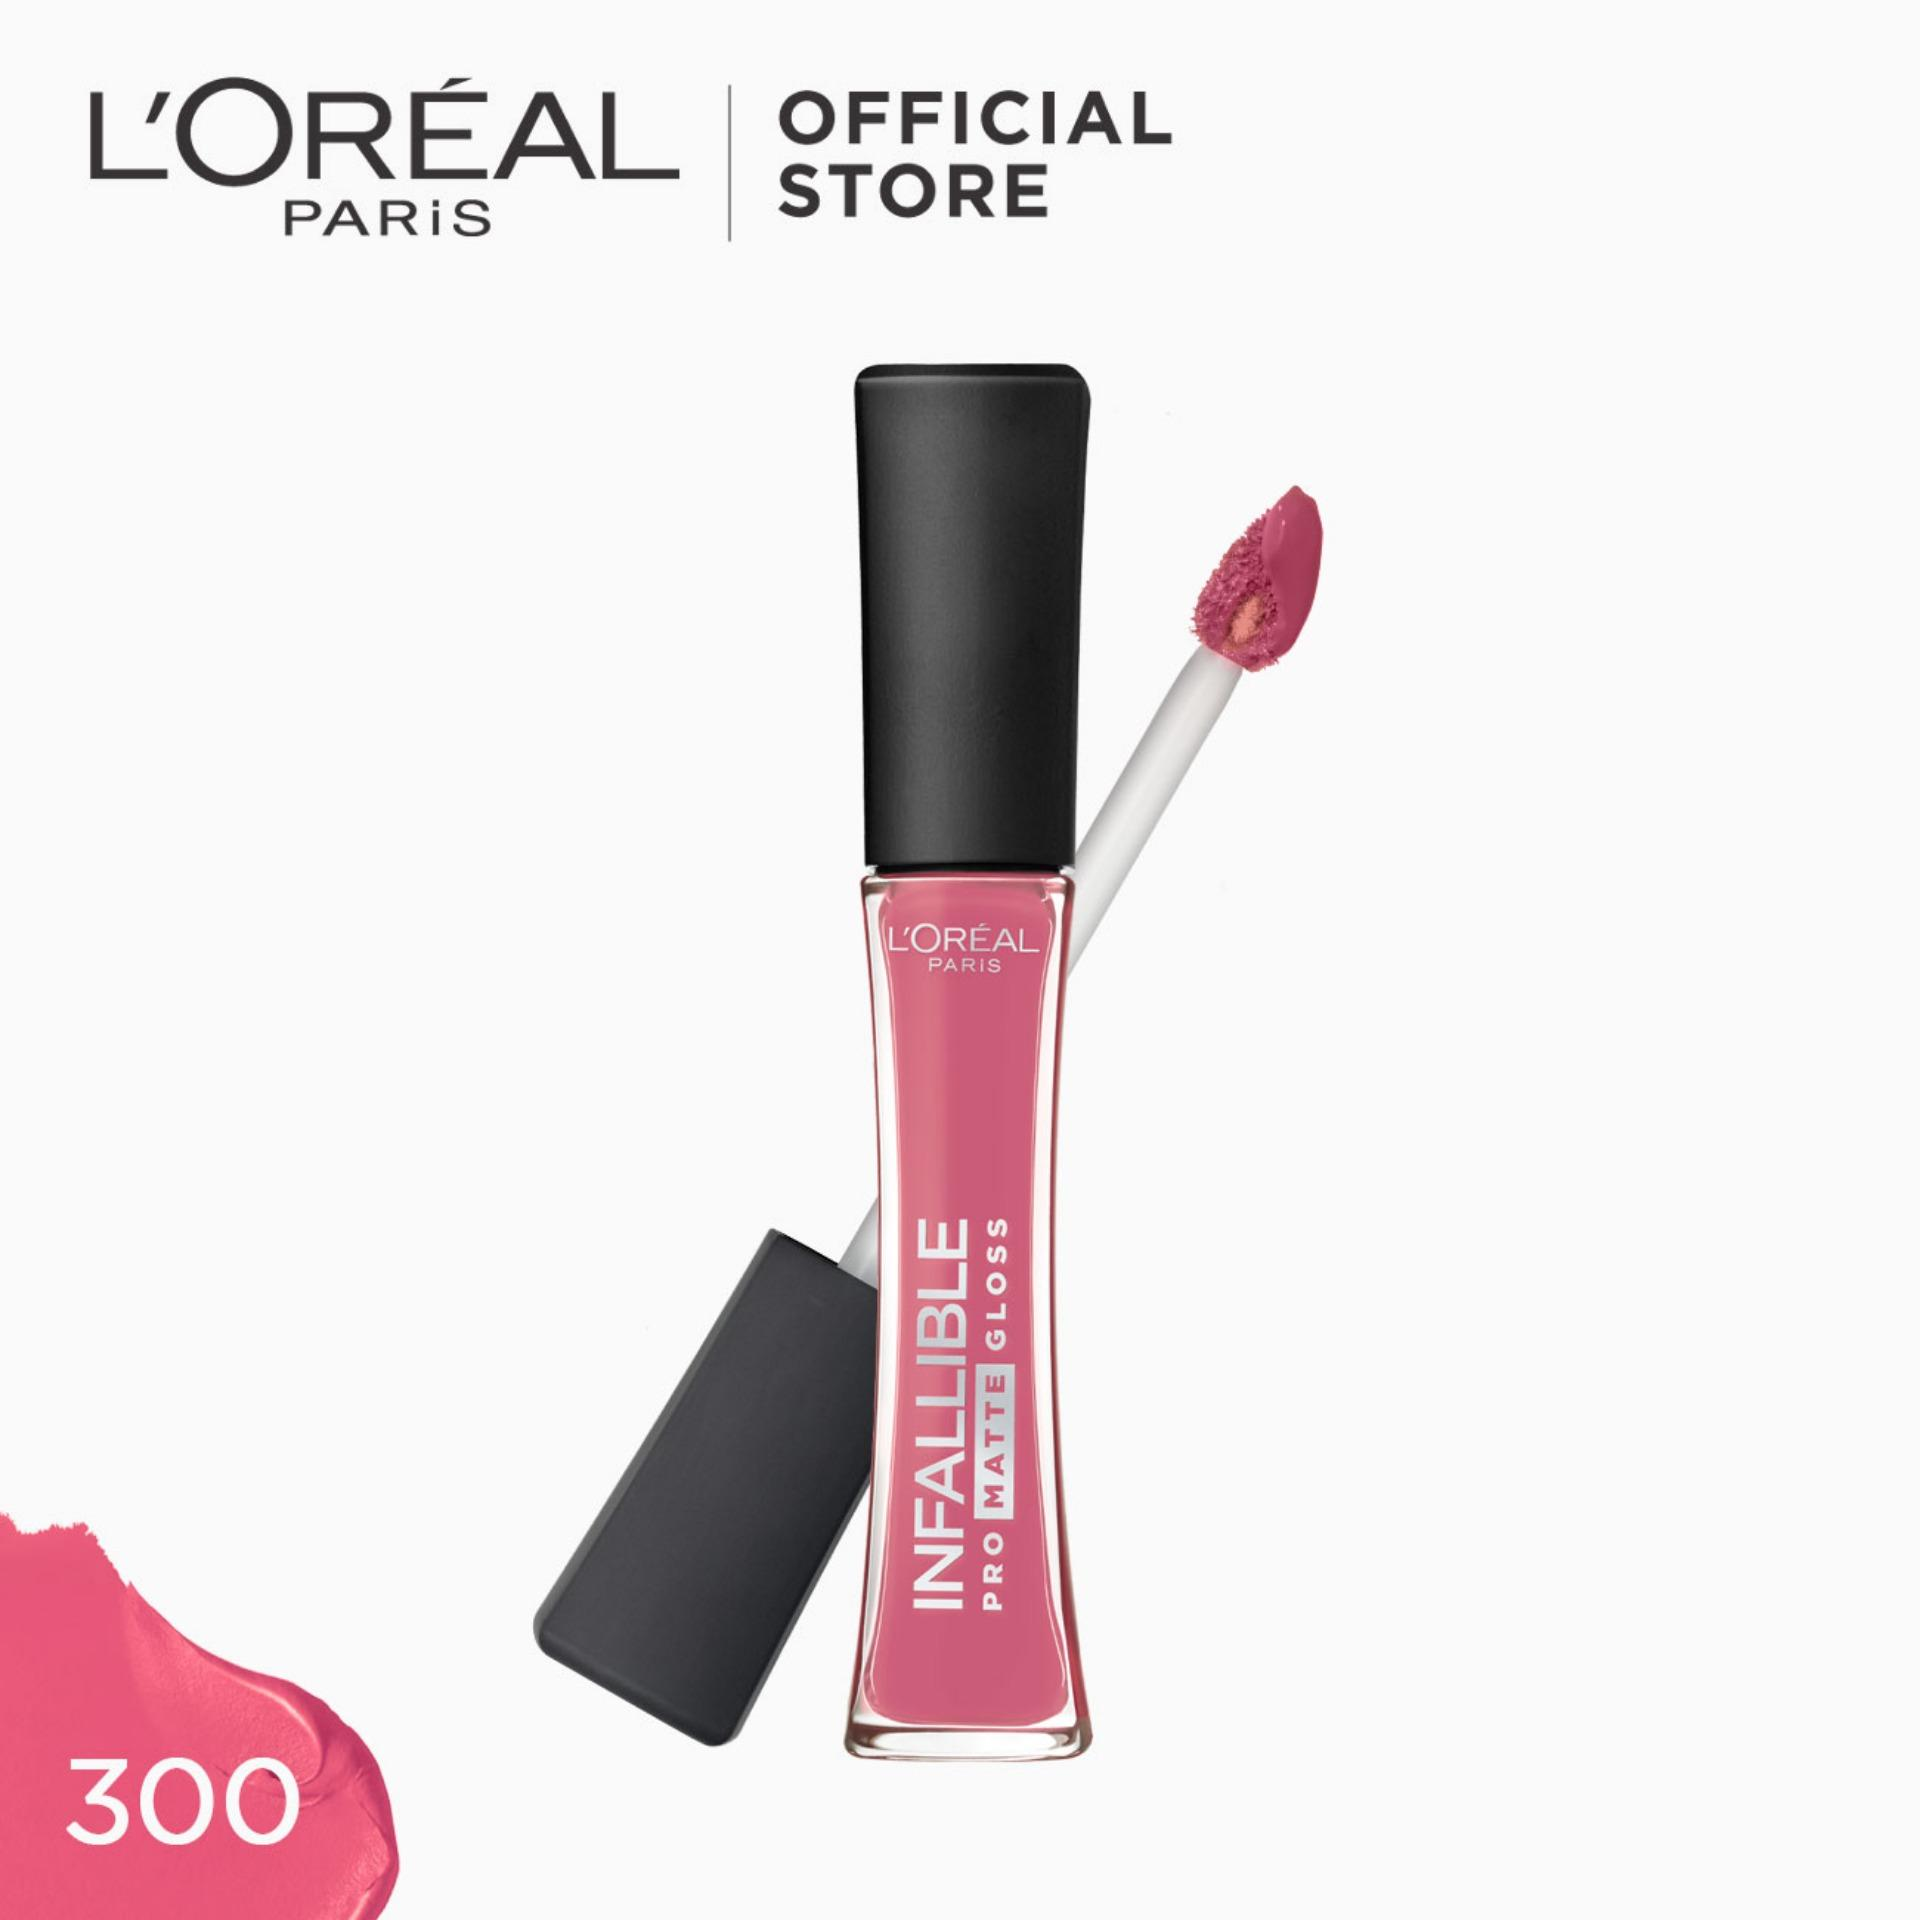 Infallible Pro-Matte Gloss Liquid Lipstick - Blushing Ambition 300 [#NeverFail] by LOréal Paris Philippines